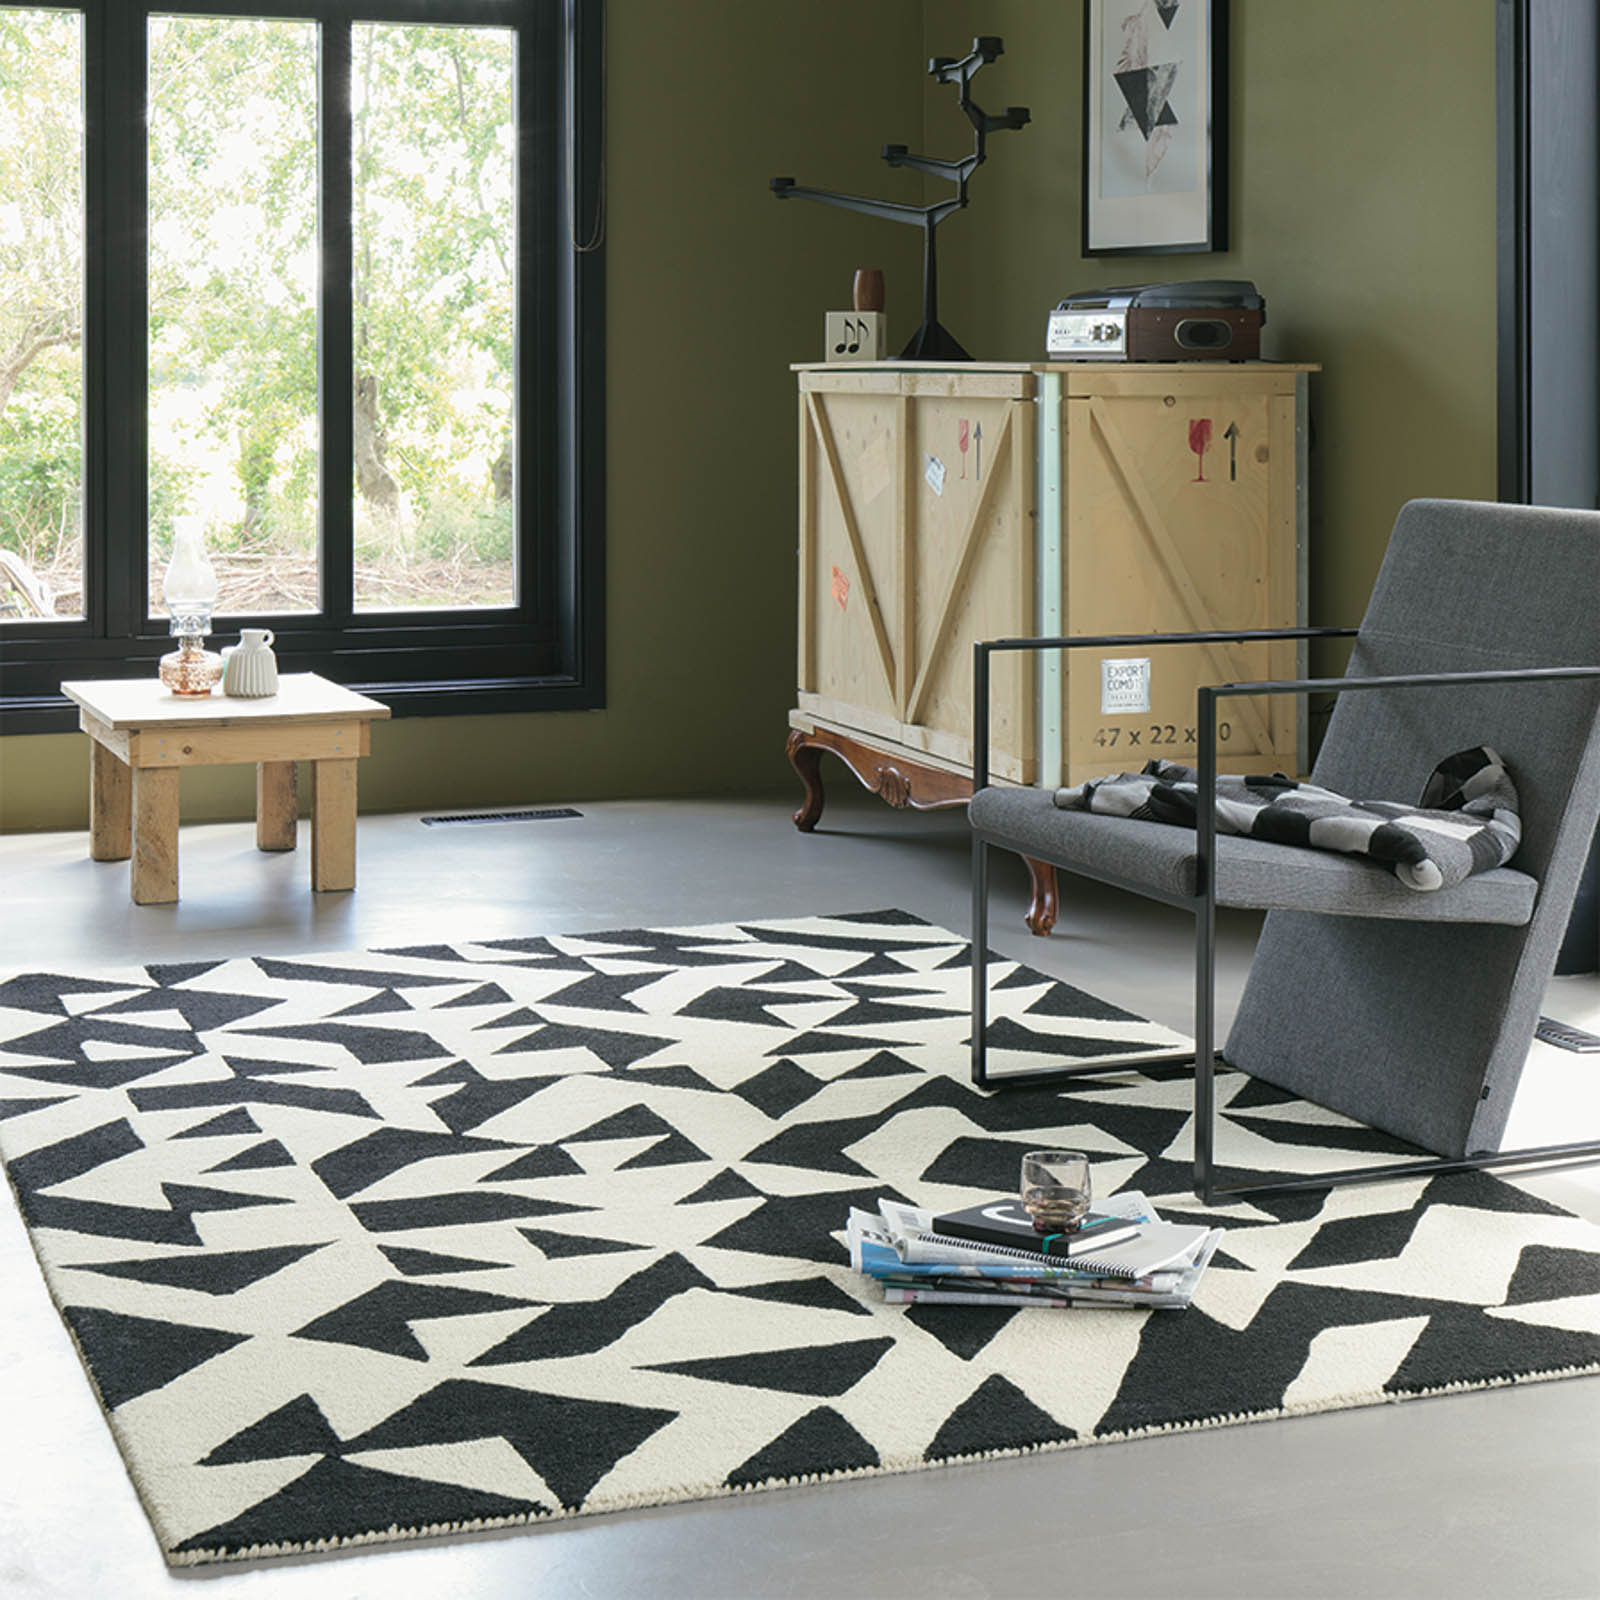 Nova Origami Rugs 89005 in Black and Cream by Brink and Campman